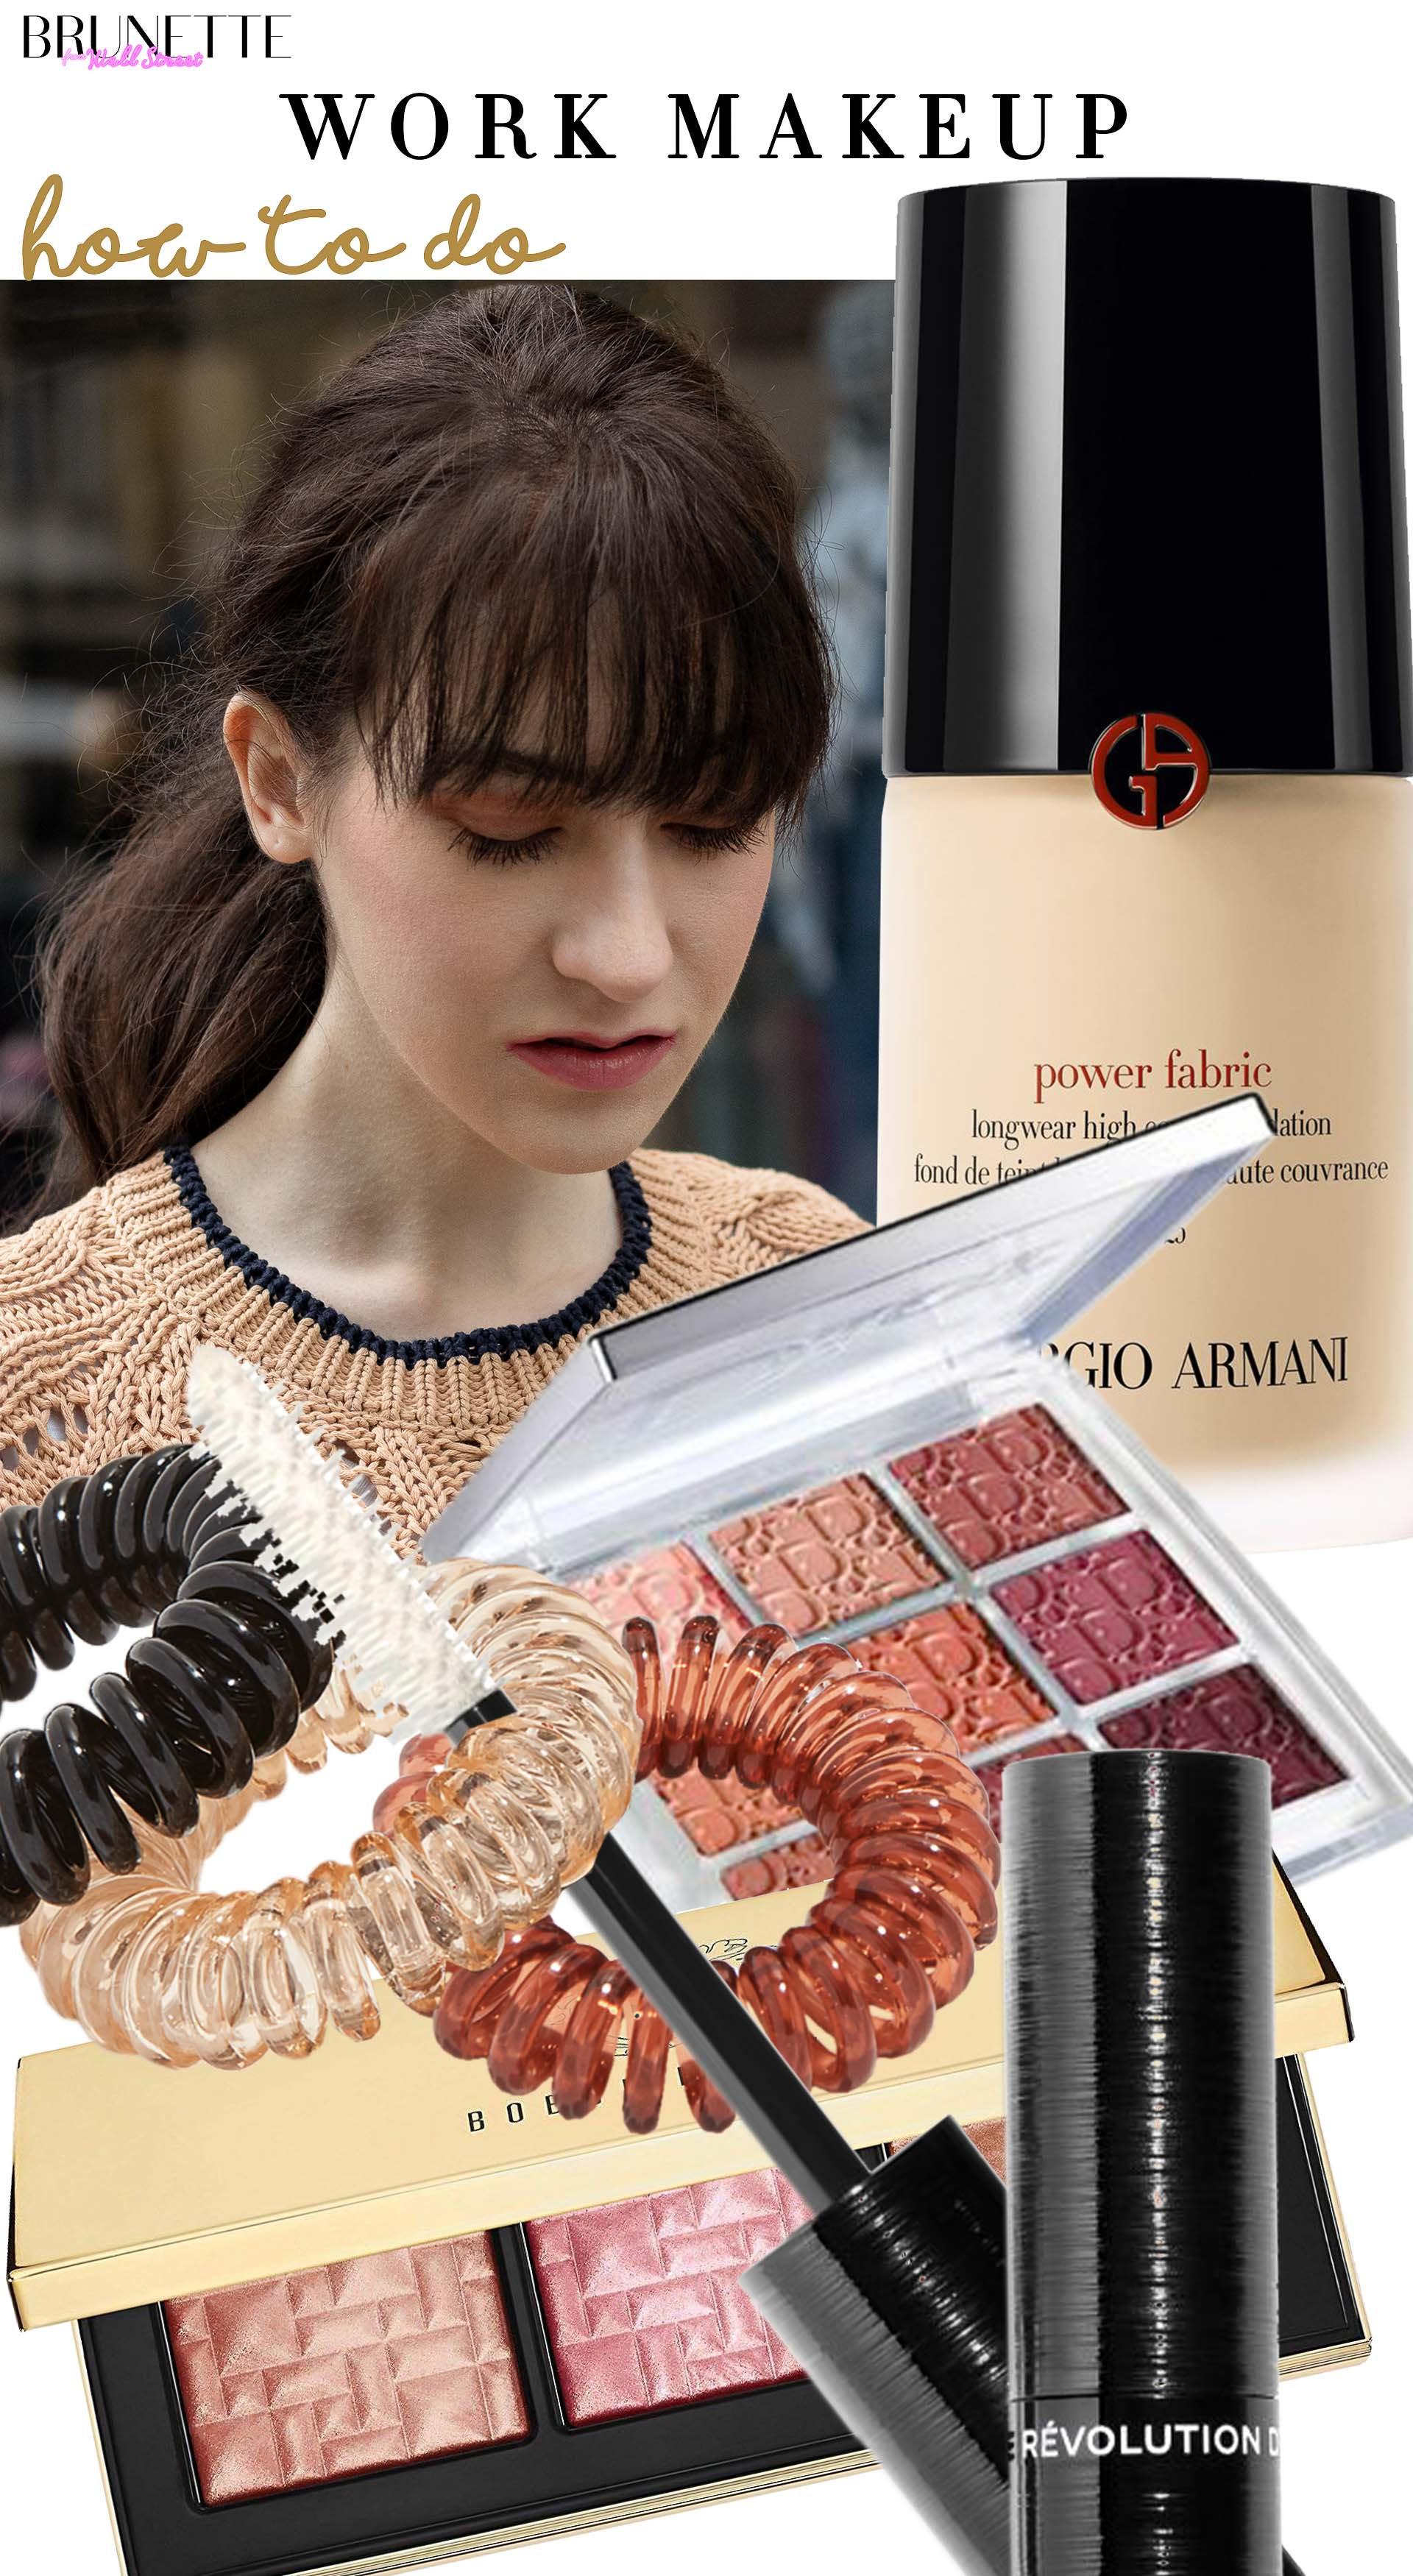 Brunette from Wall Street how to do beige camel work makeup power fabric giorgio armani dior naturelles eye shadows bibbi brown highlighter chanel mascara wirecord hairties